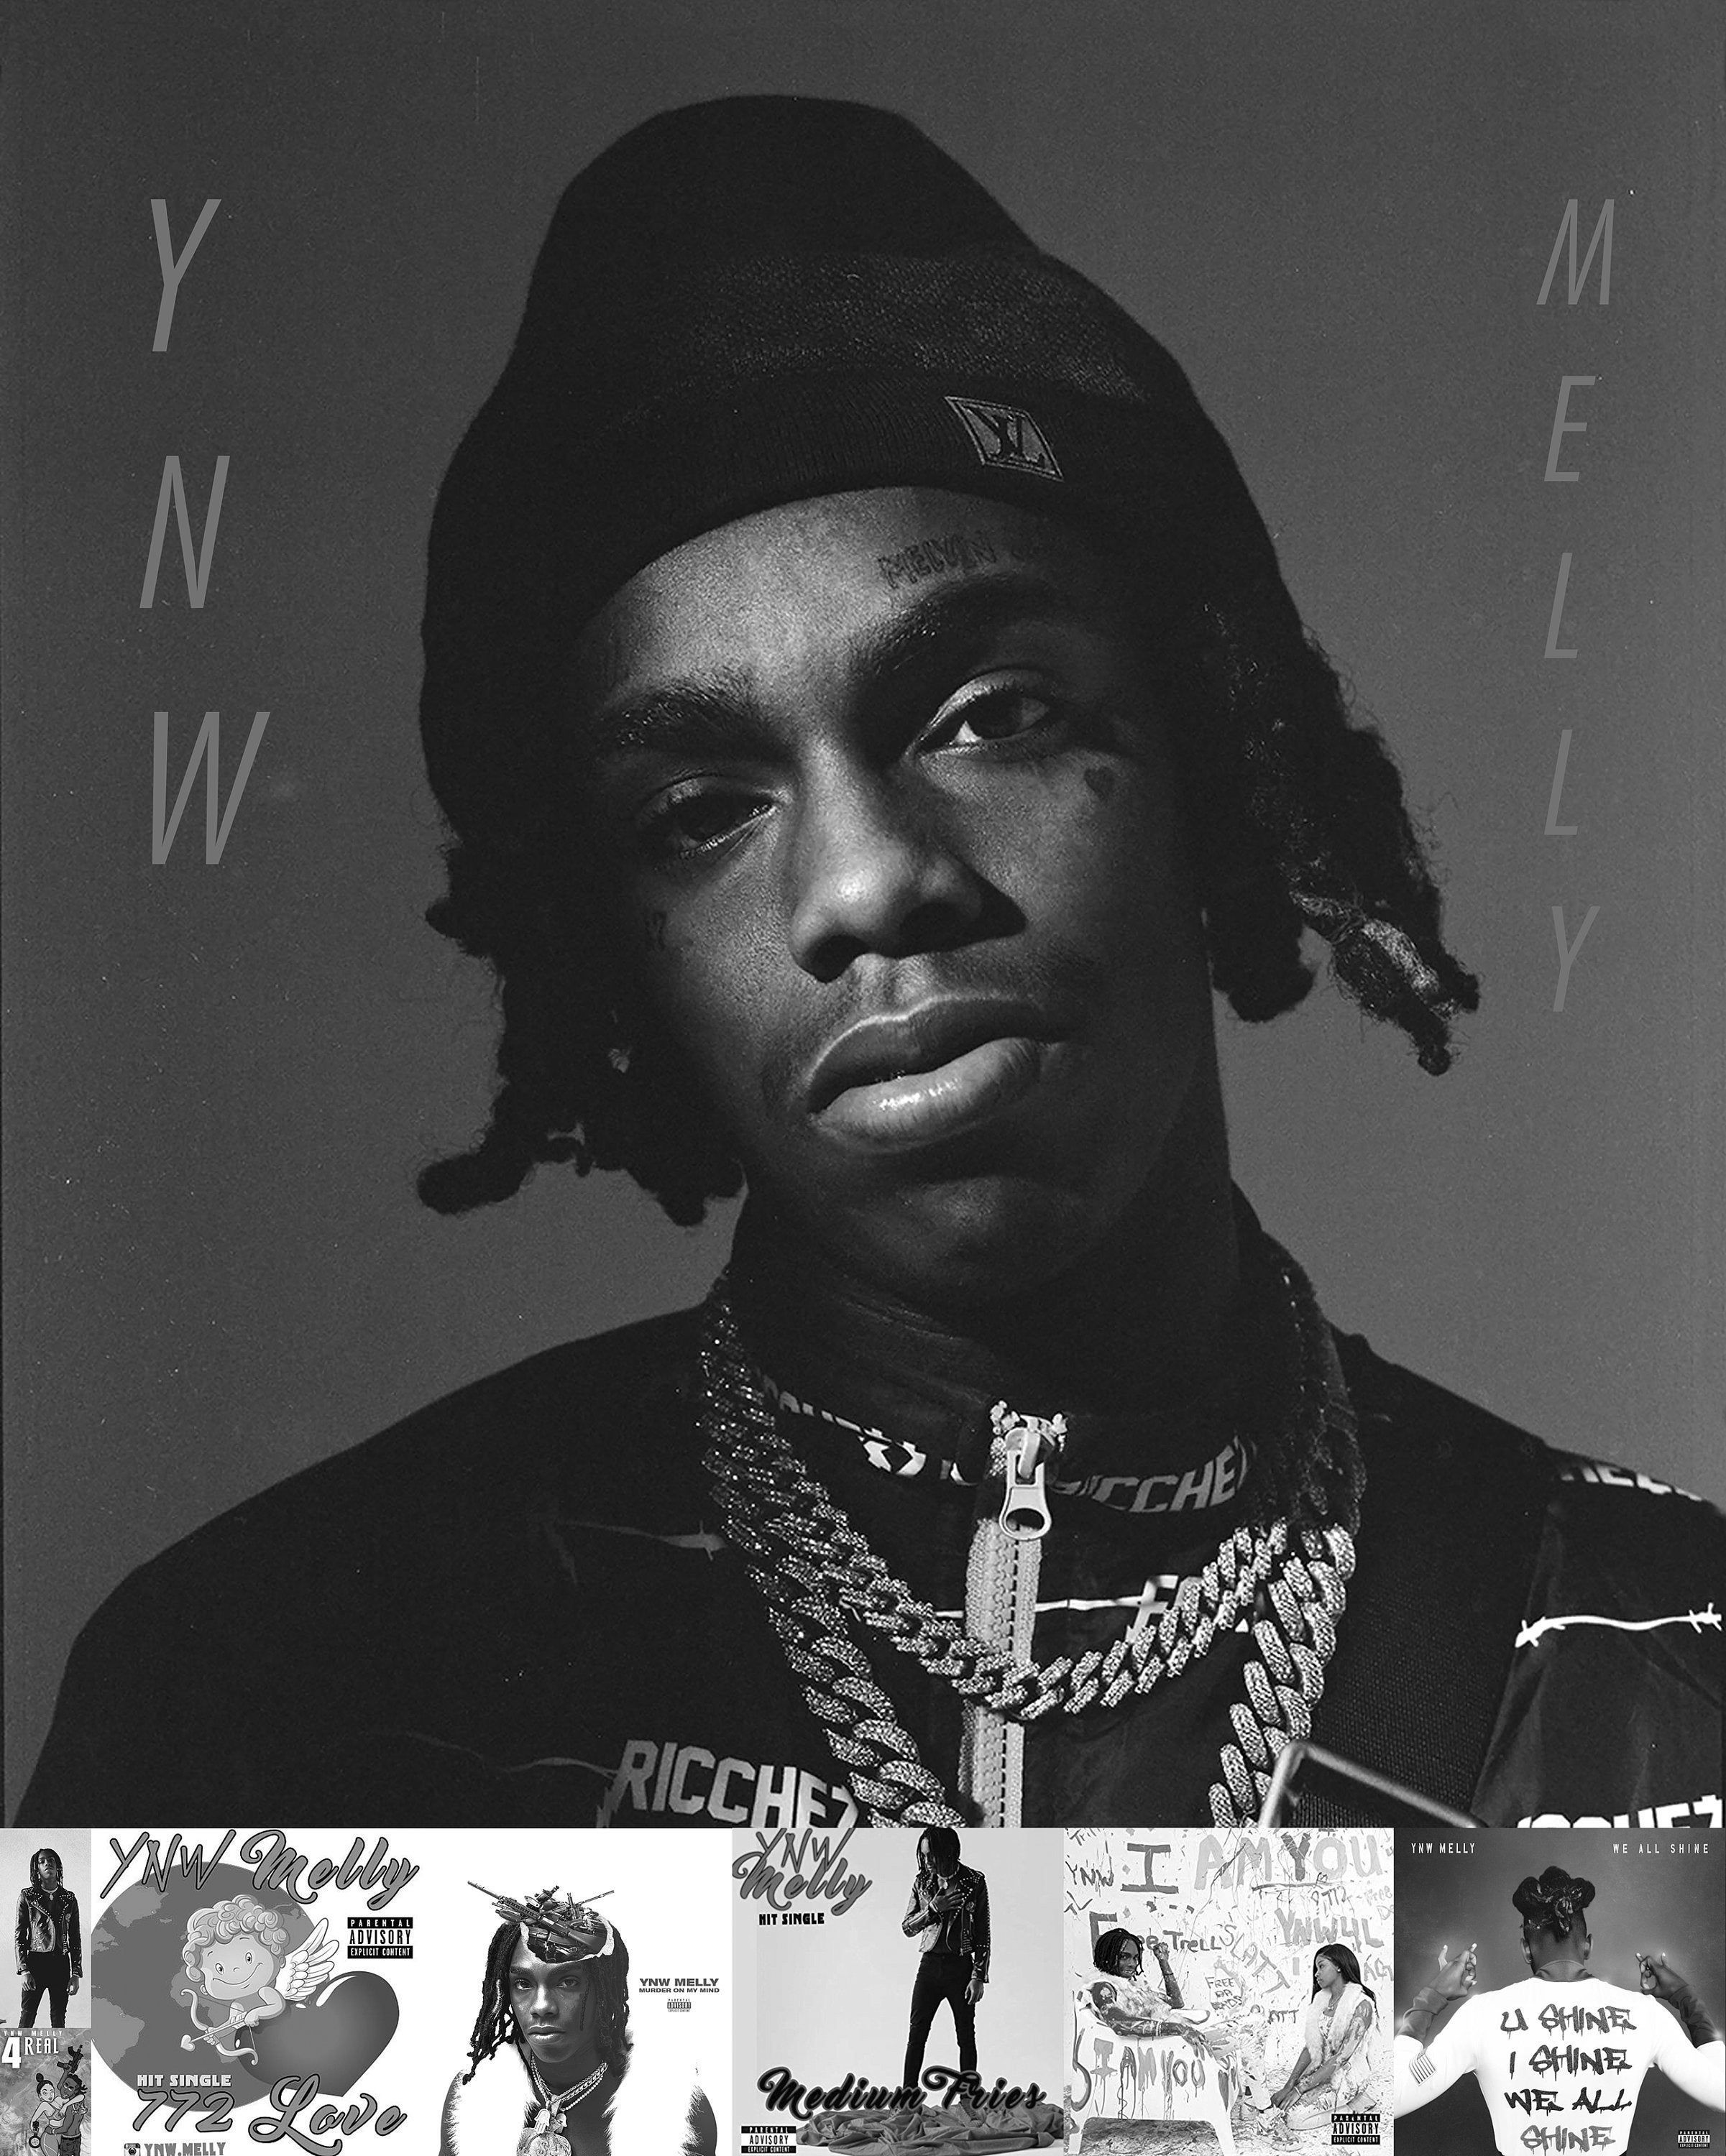 Cute Pictures Of Ynw Melly Ynw Melly Pictures Aesthetic Wallpapers Rap Wallpaper Rapper Art